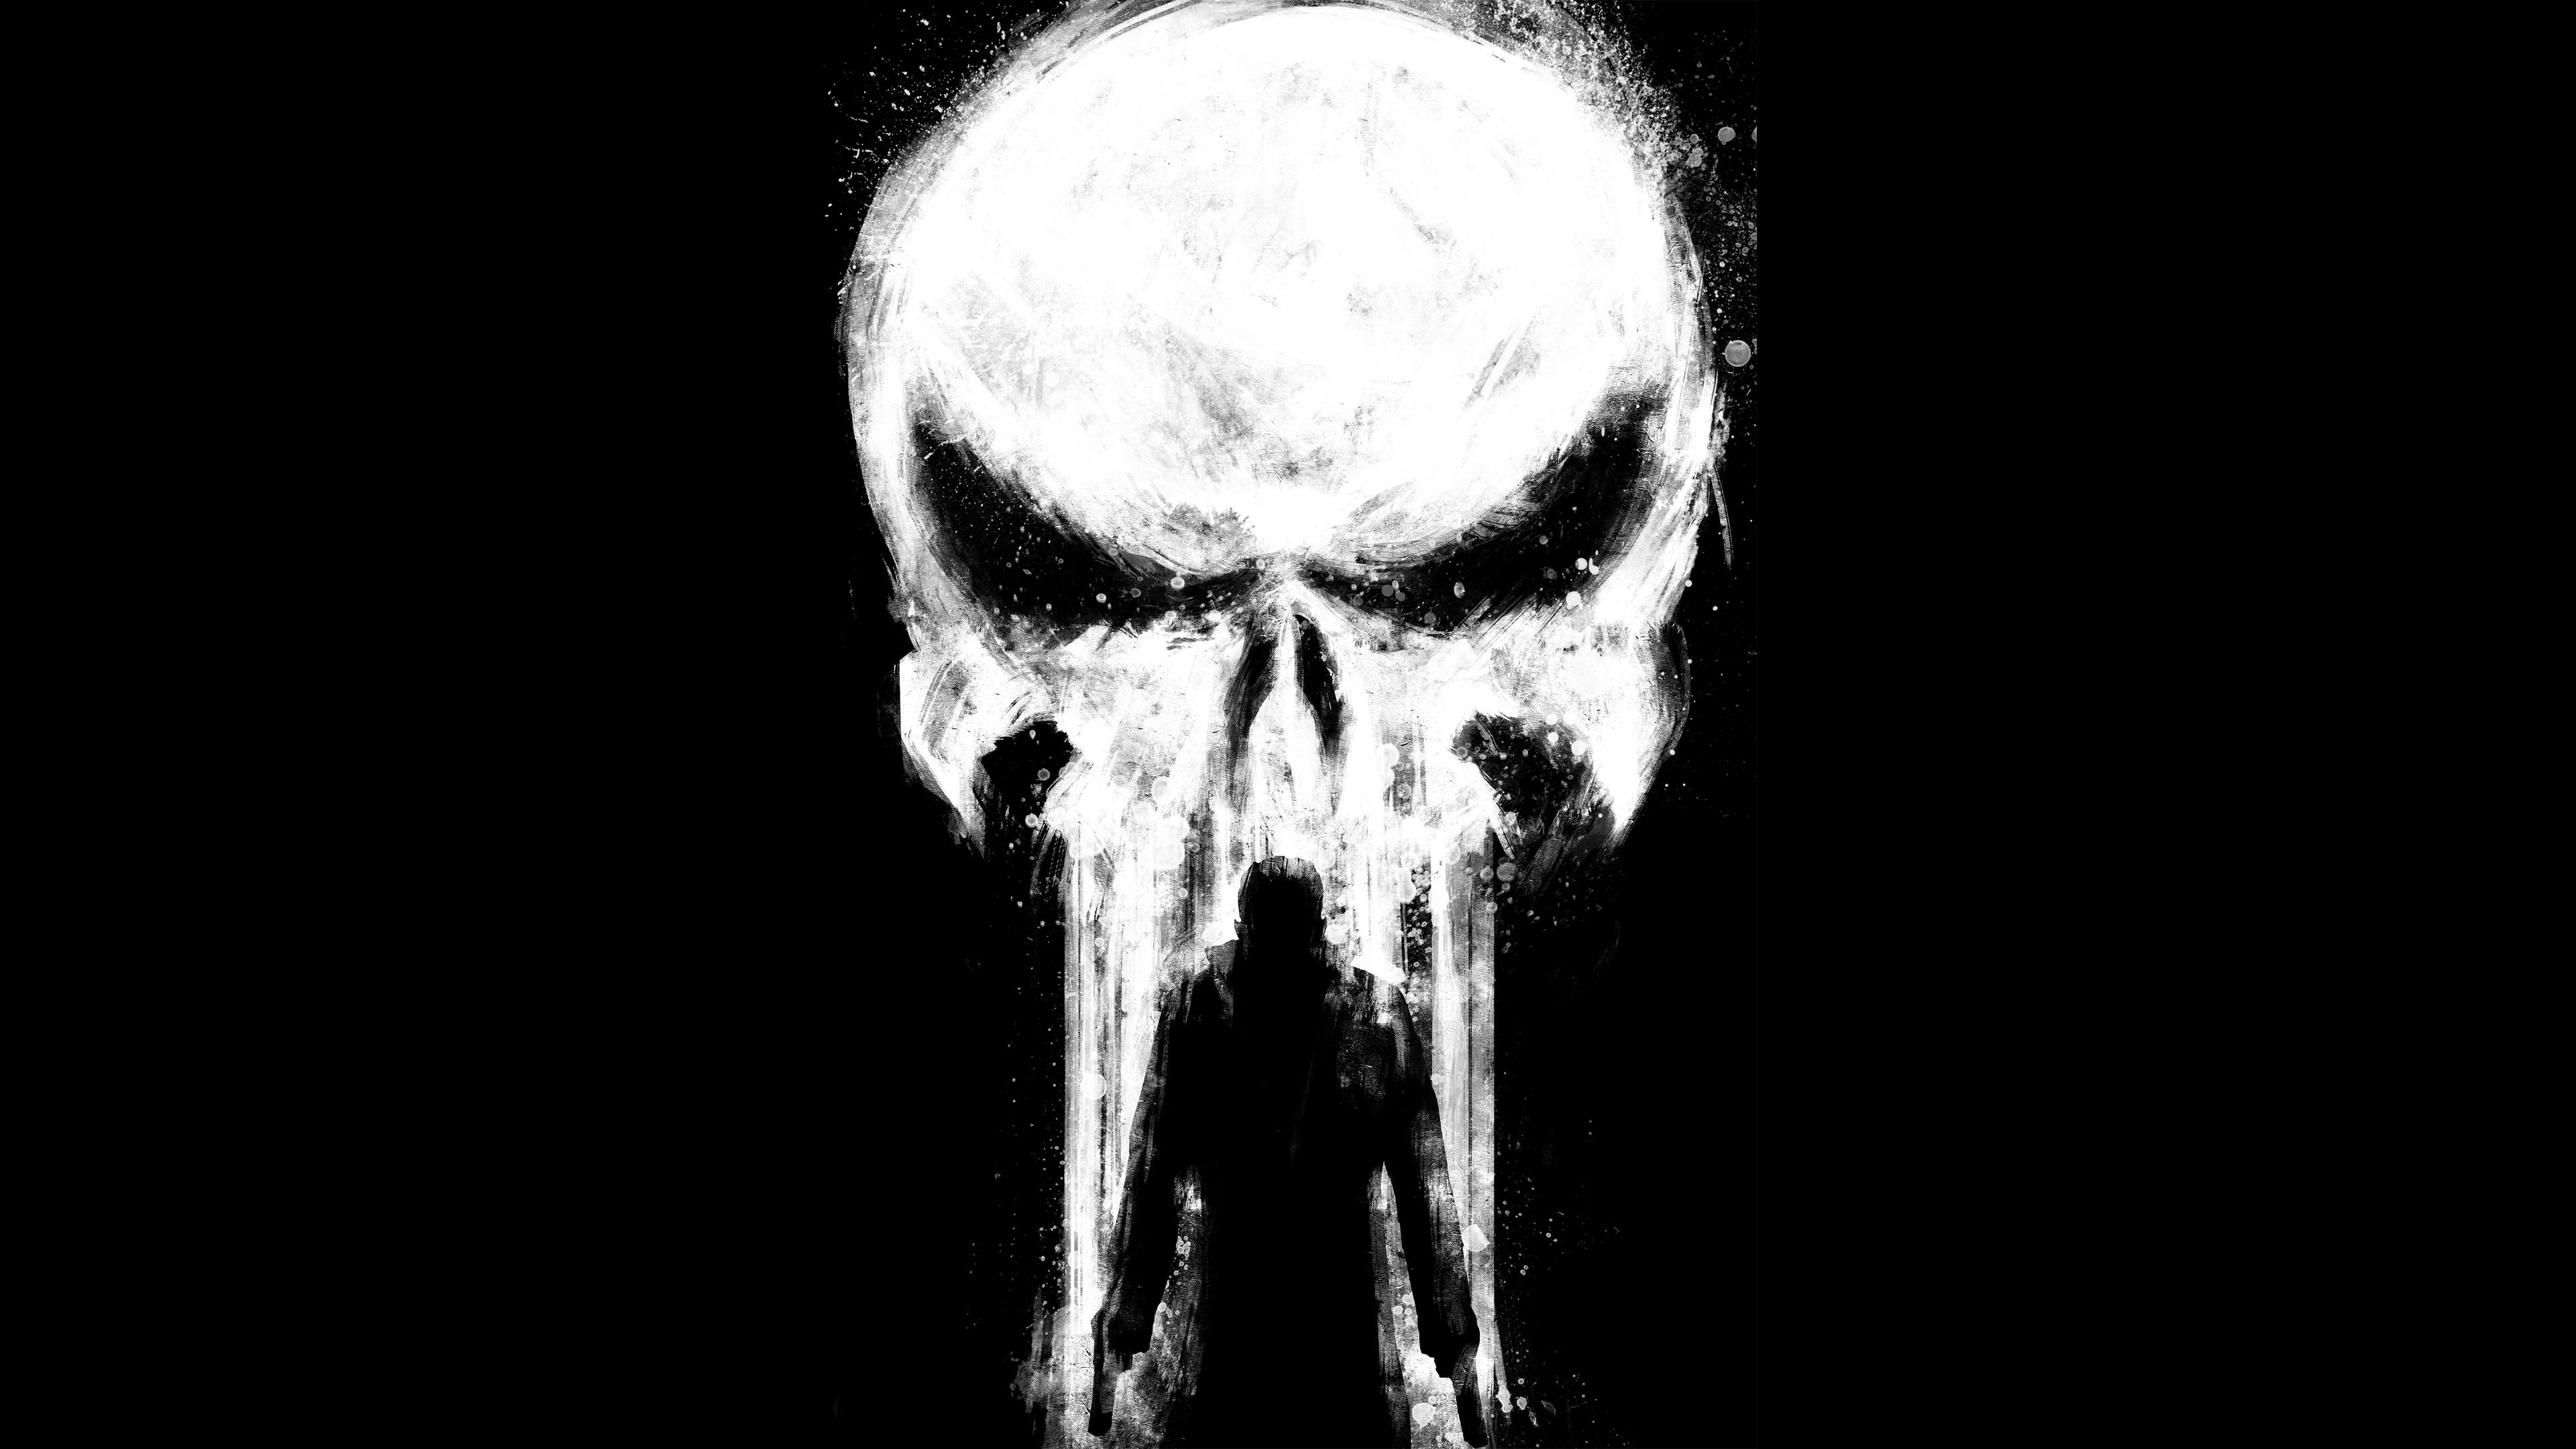 Punisher Paint Art 4k the punisher wallpapers, superheroes